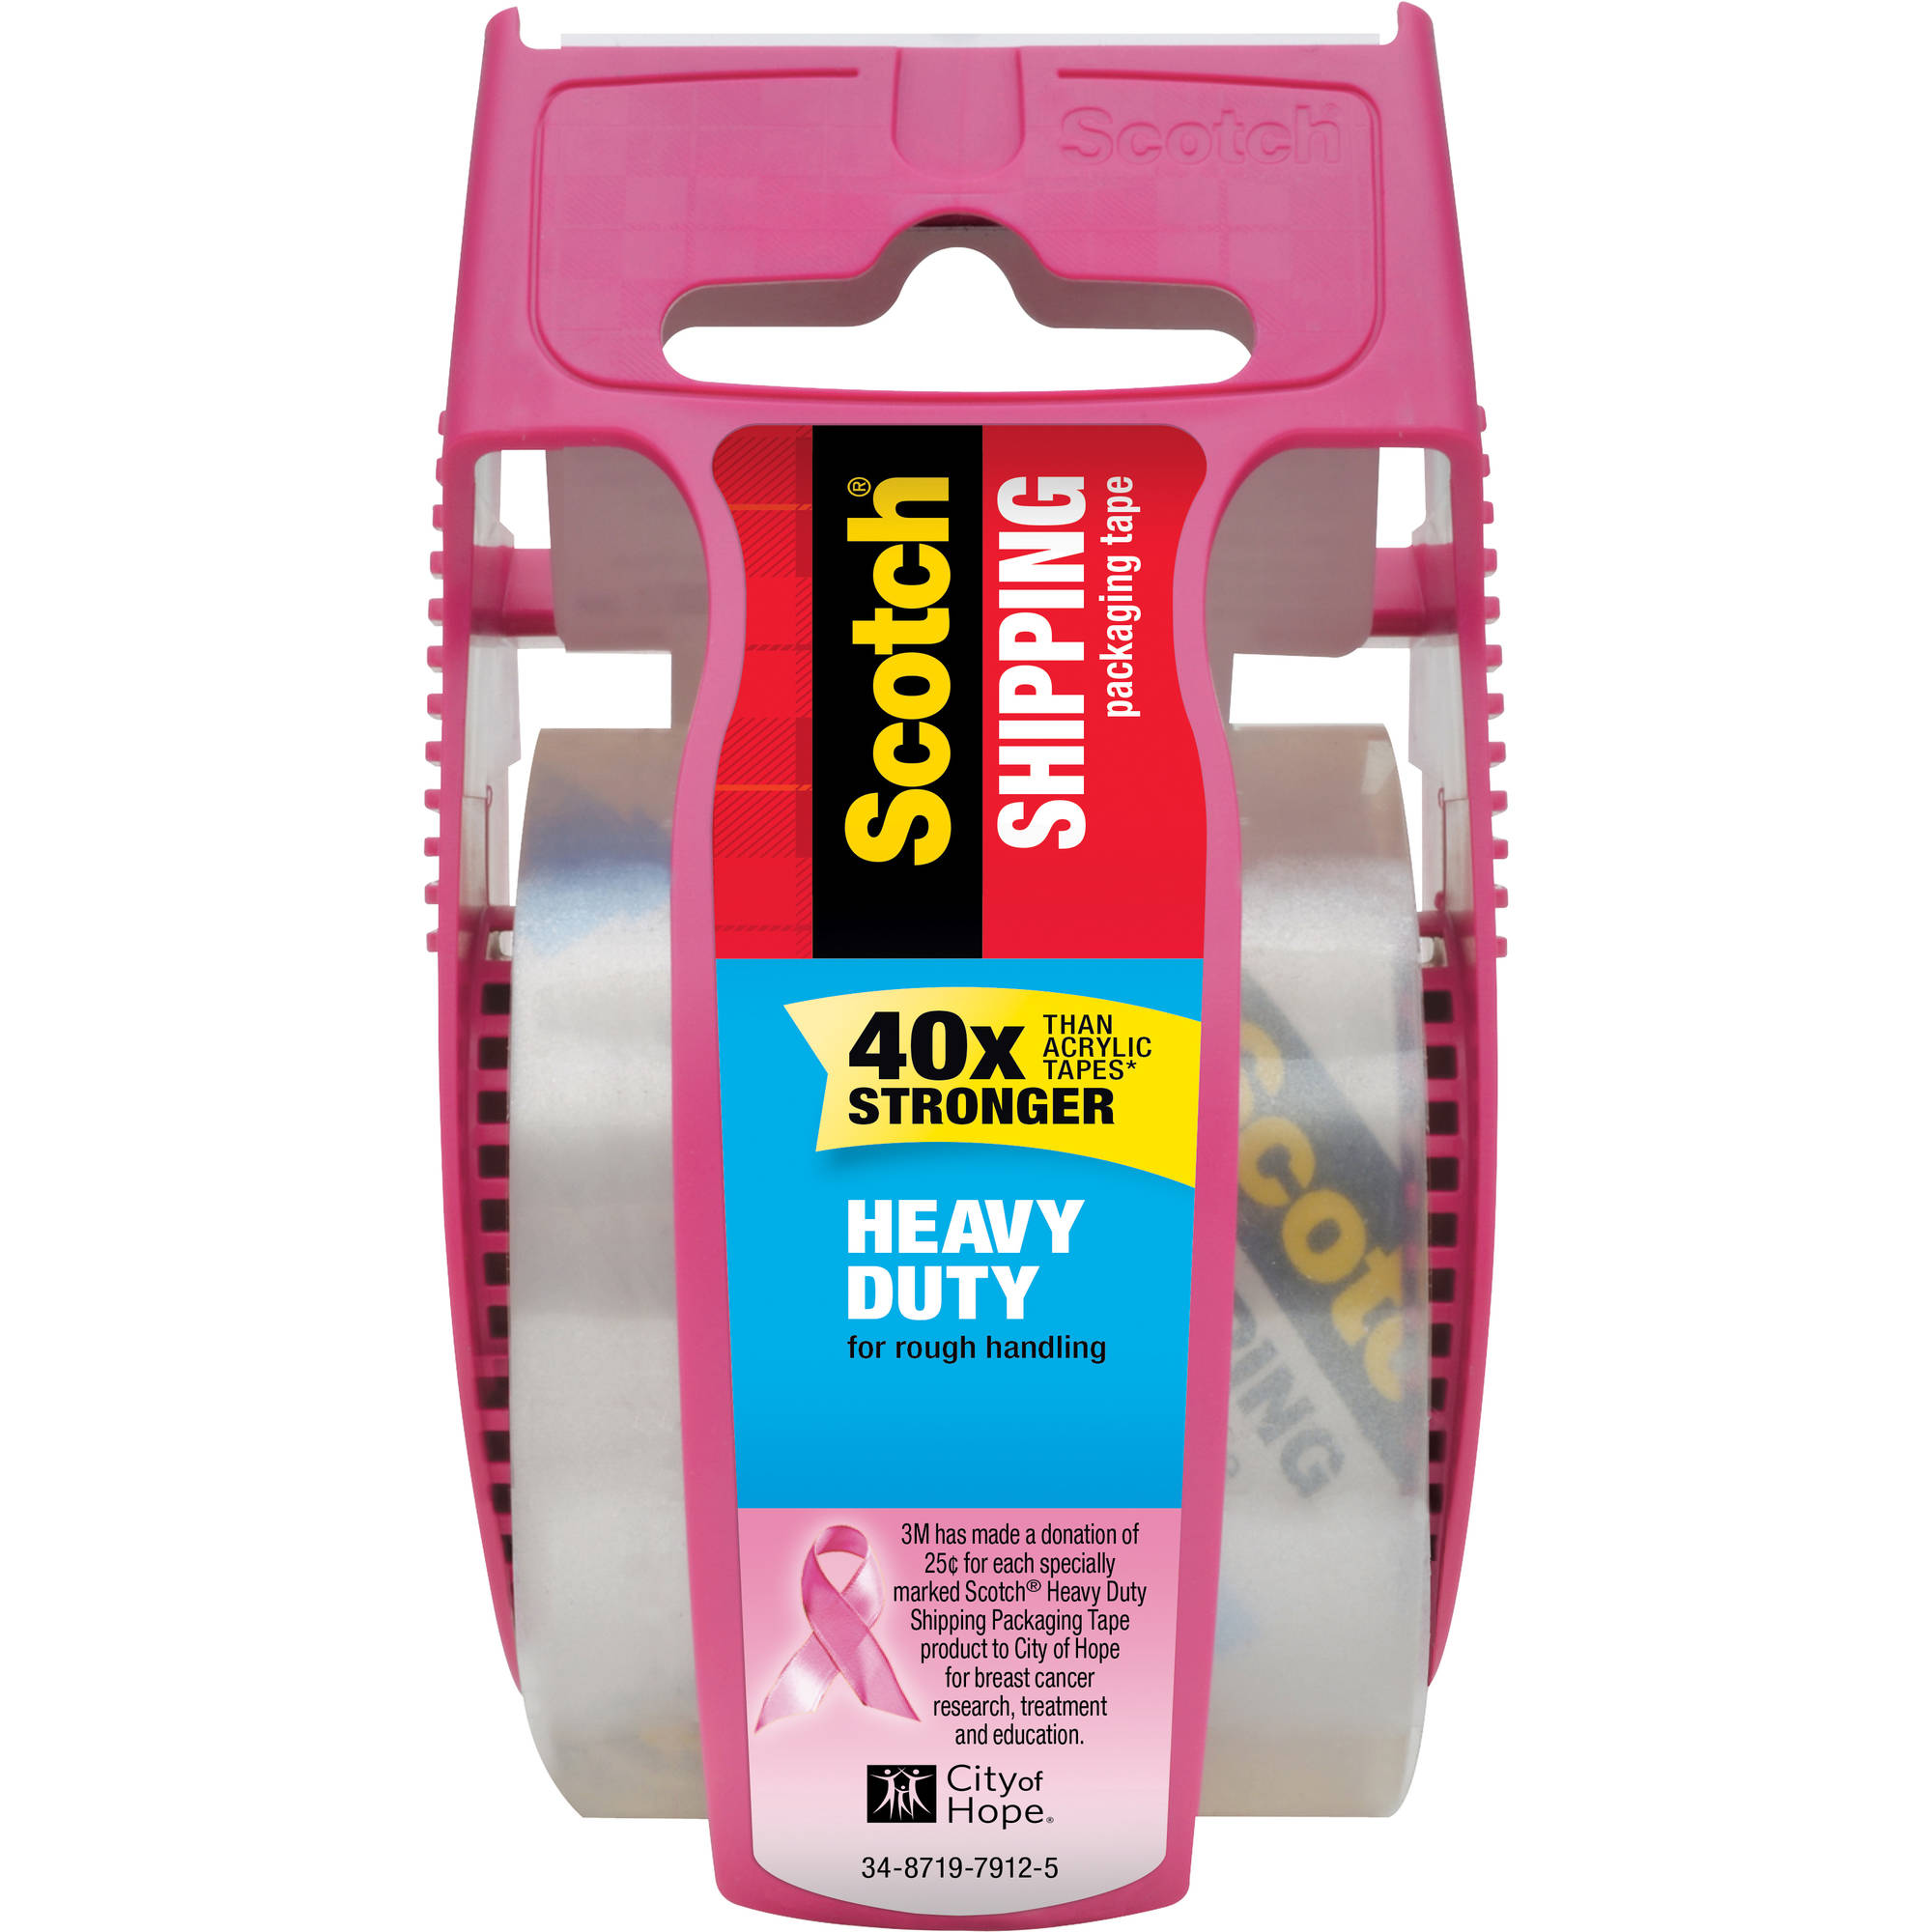 Scotch Heavy Duty Shipping Packaging Tape With Dispenser, 1.88 in. x 800 in., Clear, 1 Pink Dispenser/Pack